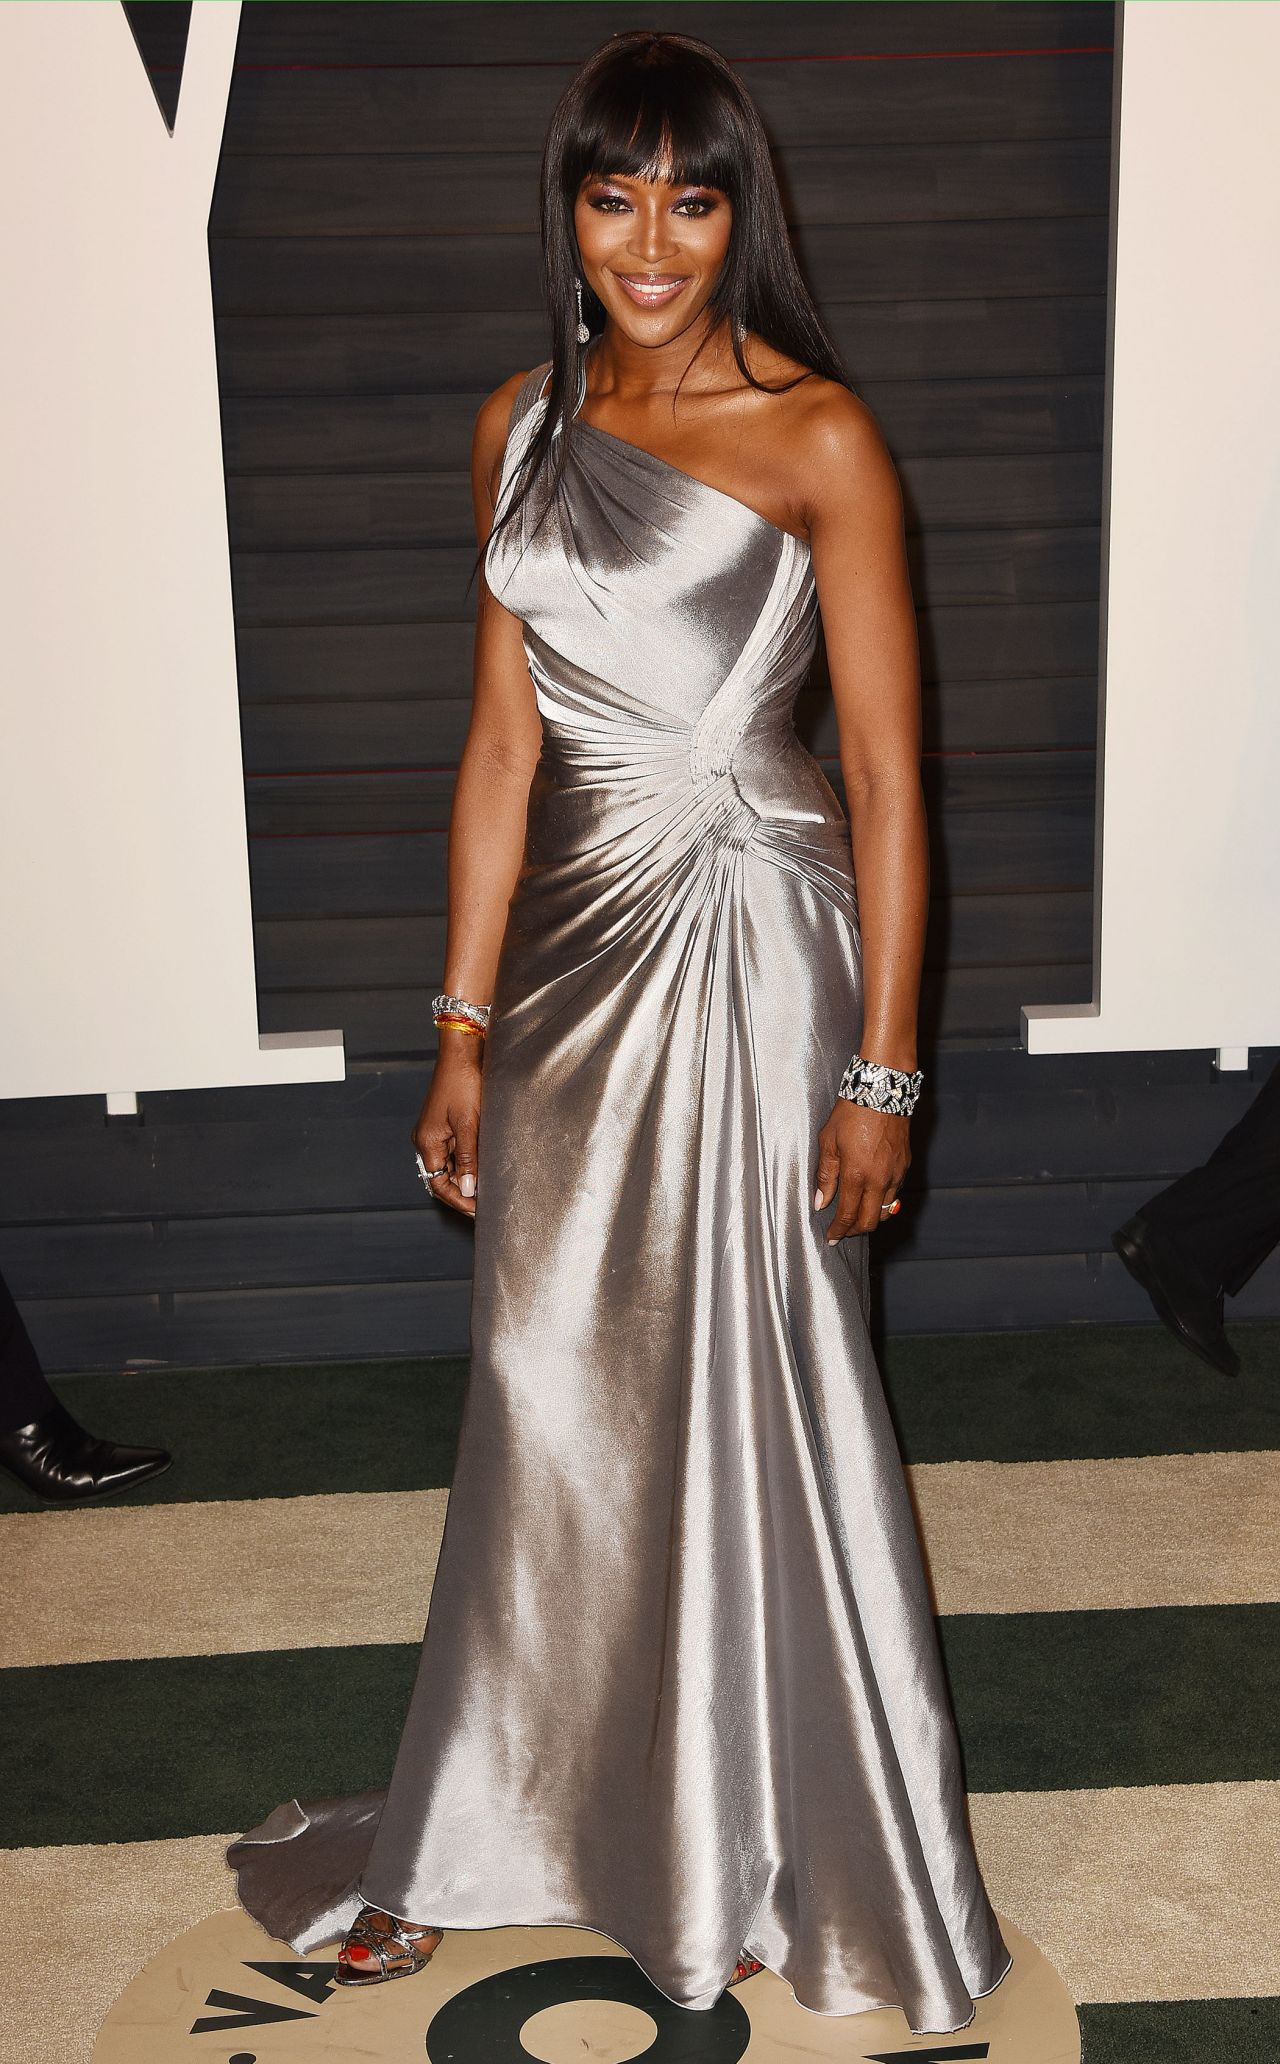 naomi-campbell-2016-vanity-fair-oscar-party-in-beverly-hills-ca-7